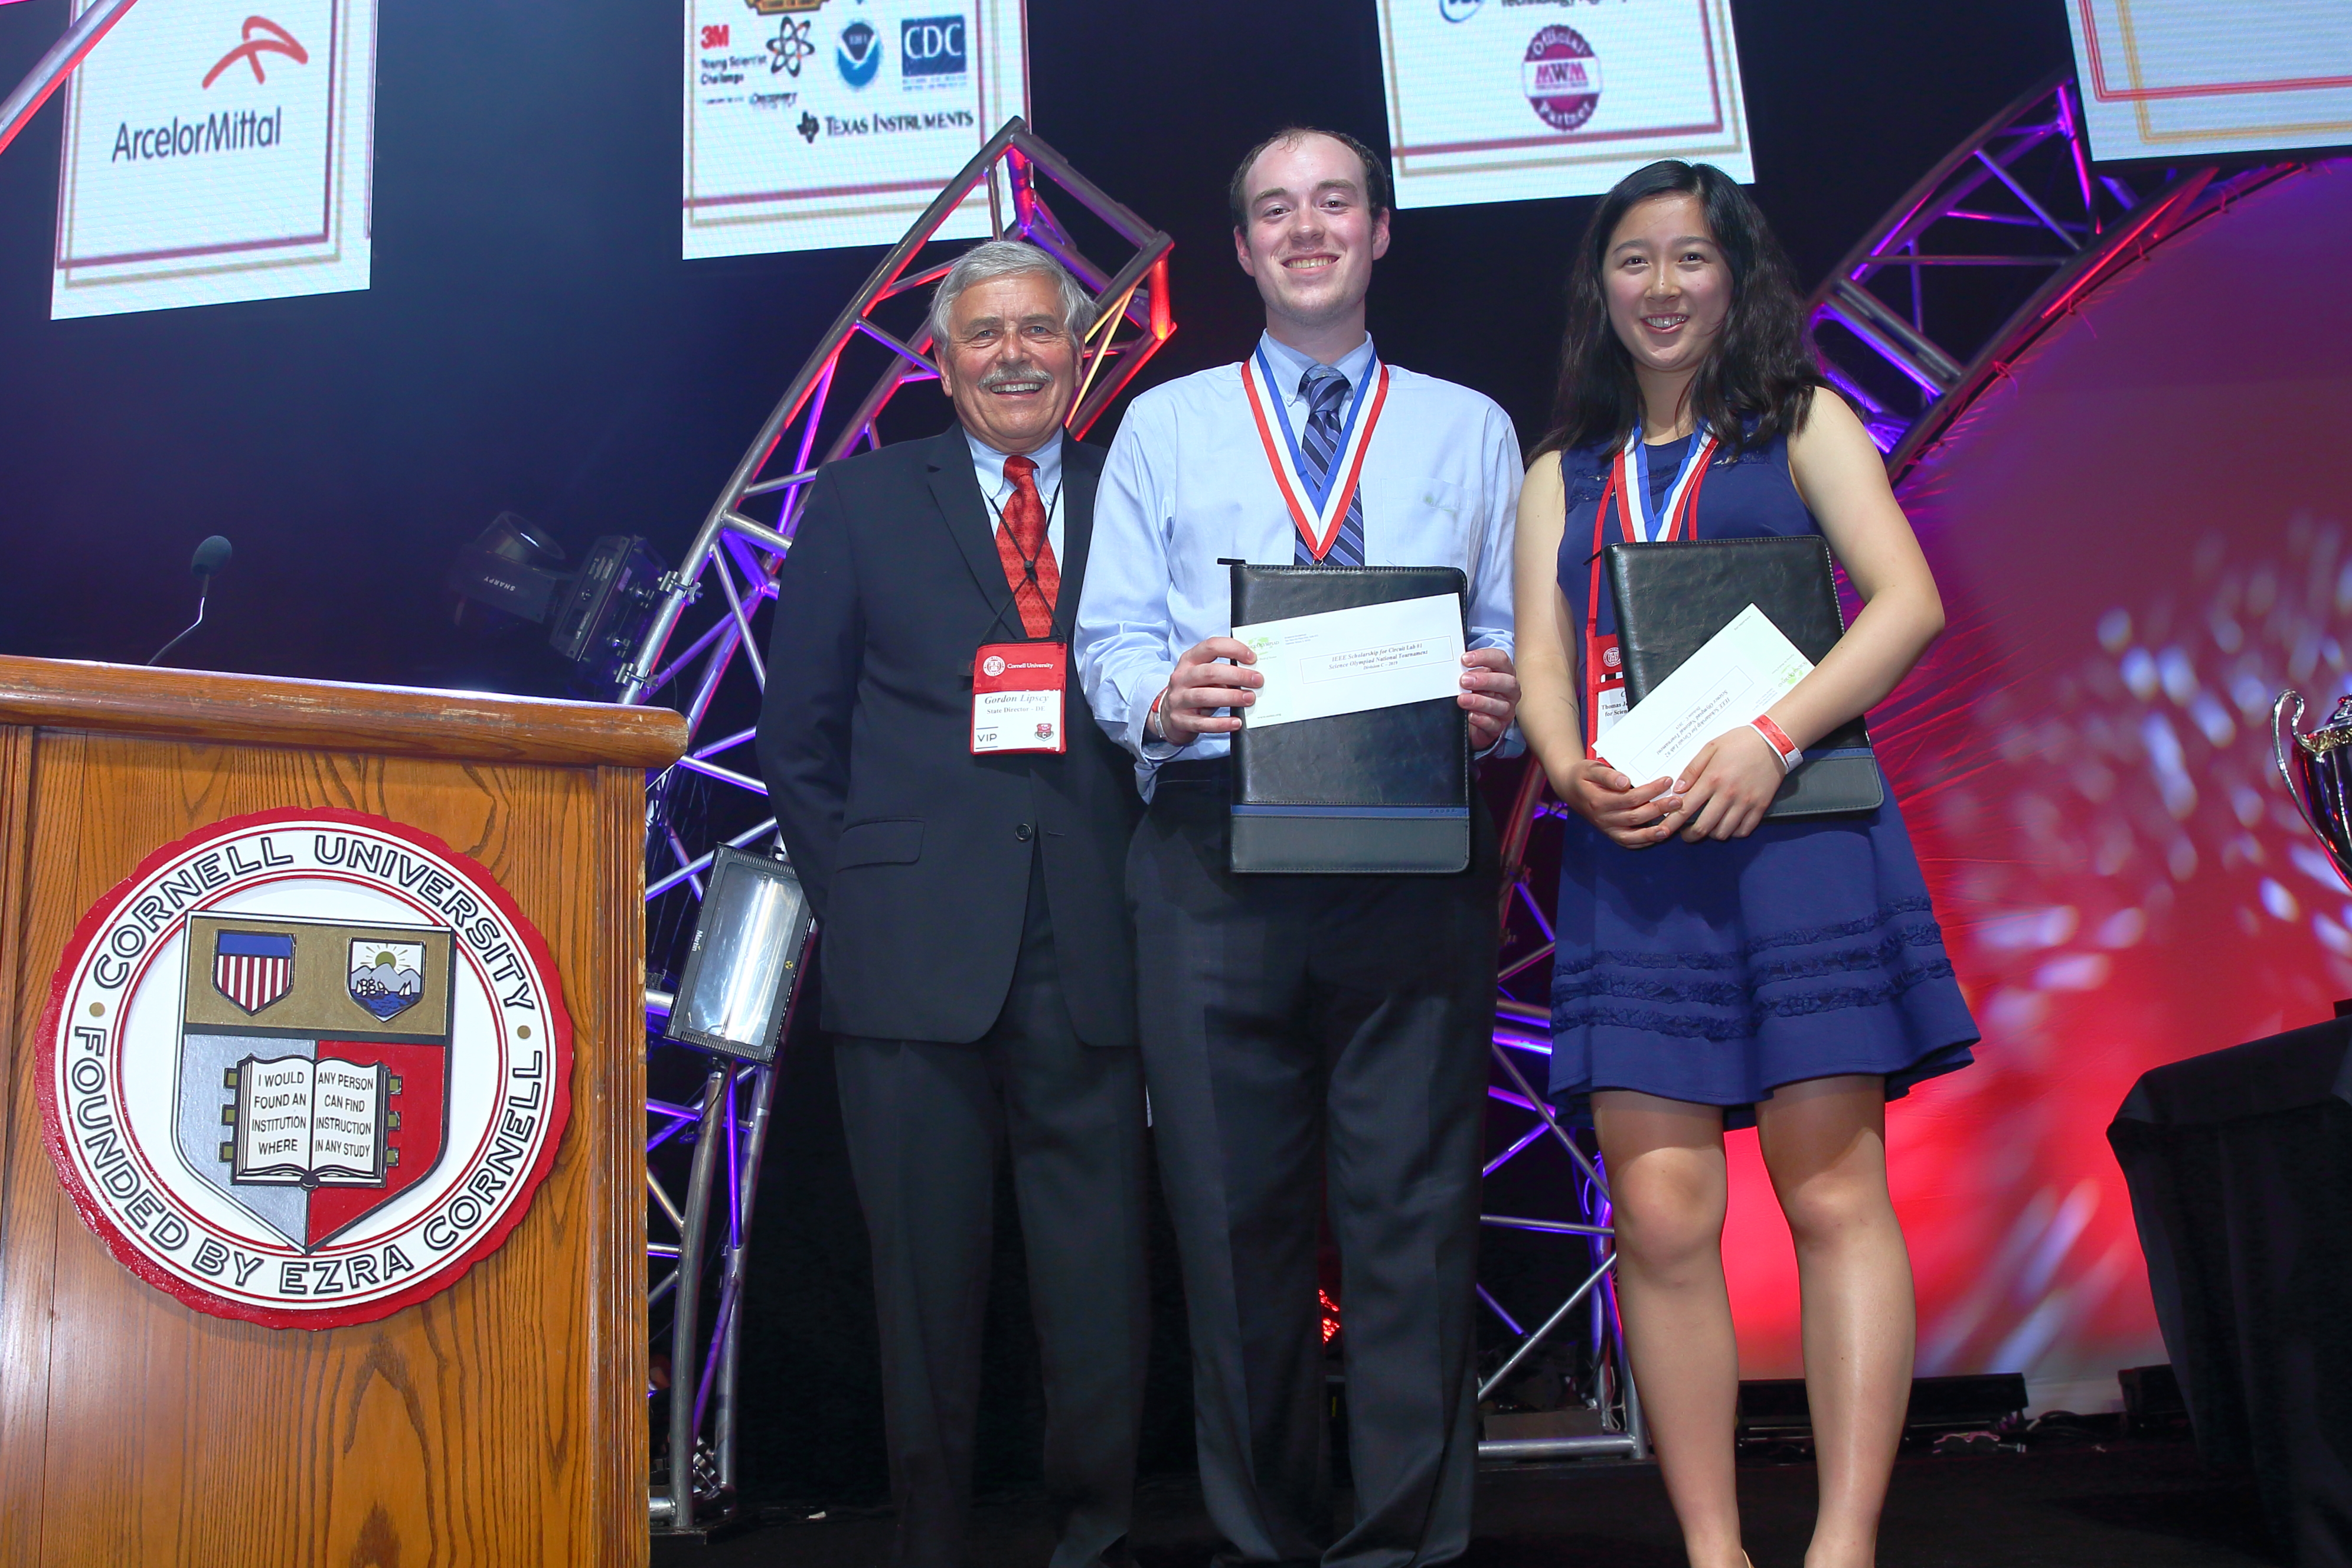 Students win IEEE scholarships at the 2019 National Tournament